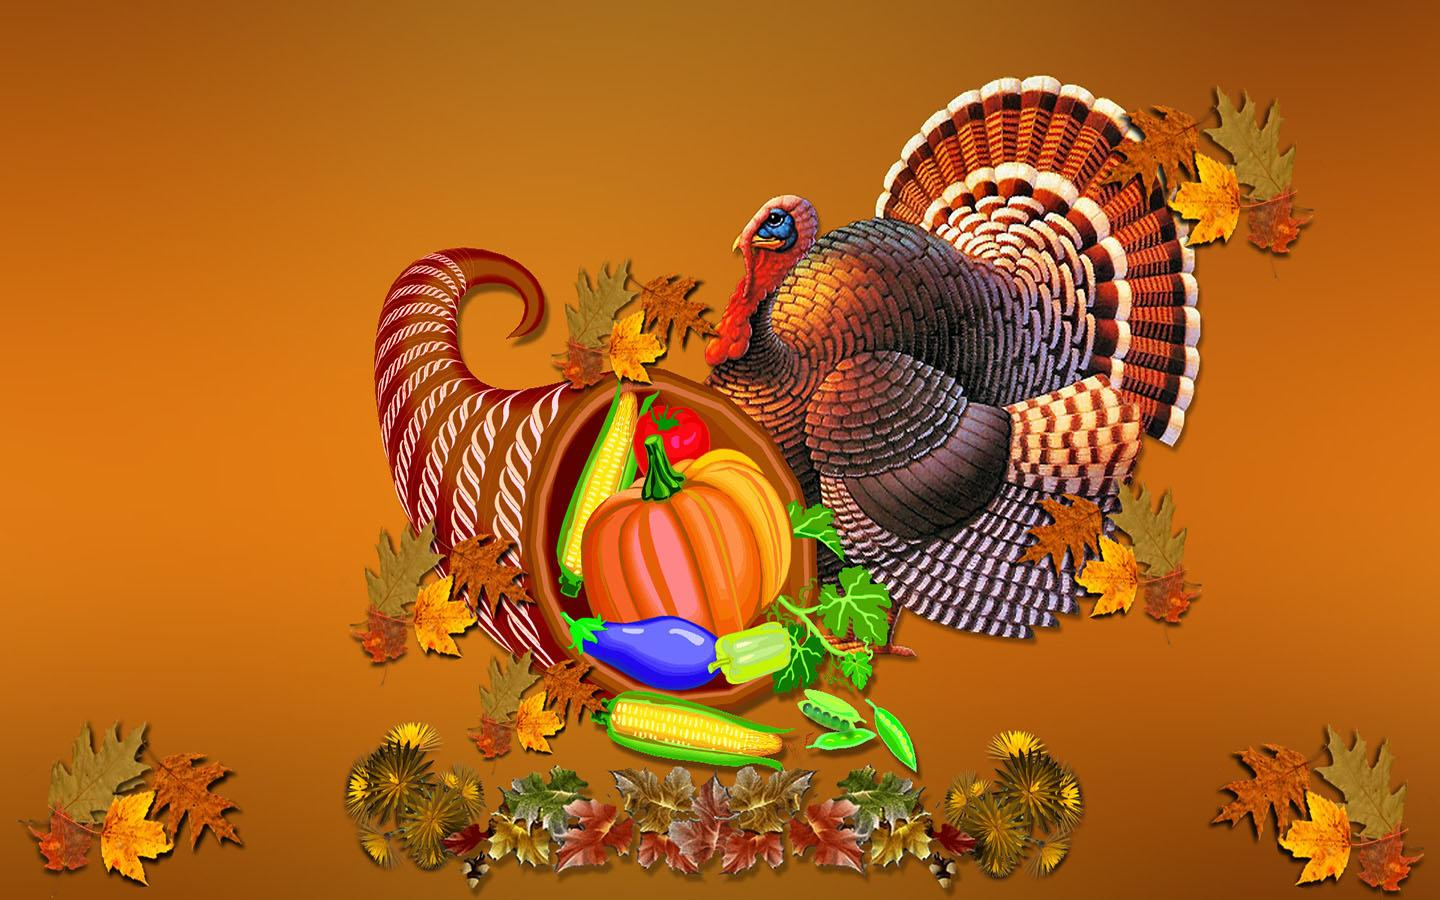 thanksgiving wallpapers for windows 7 - photo #38